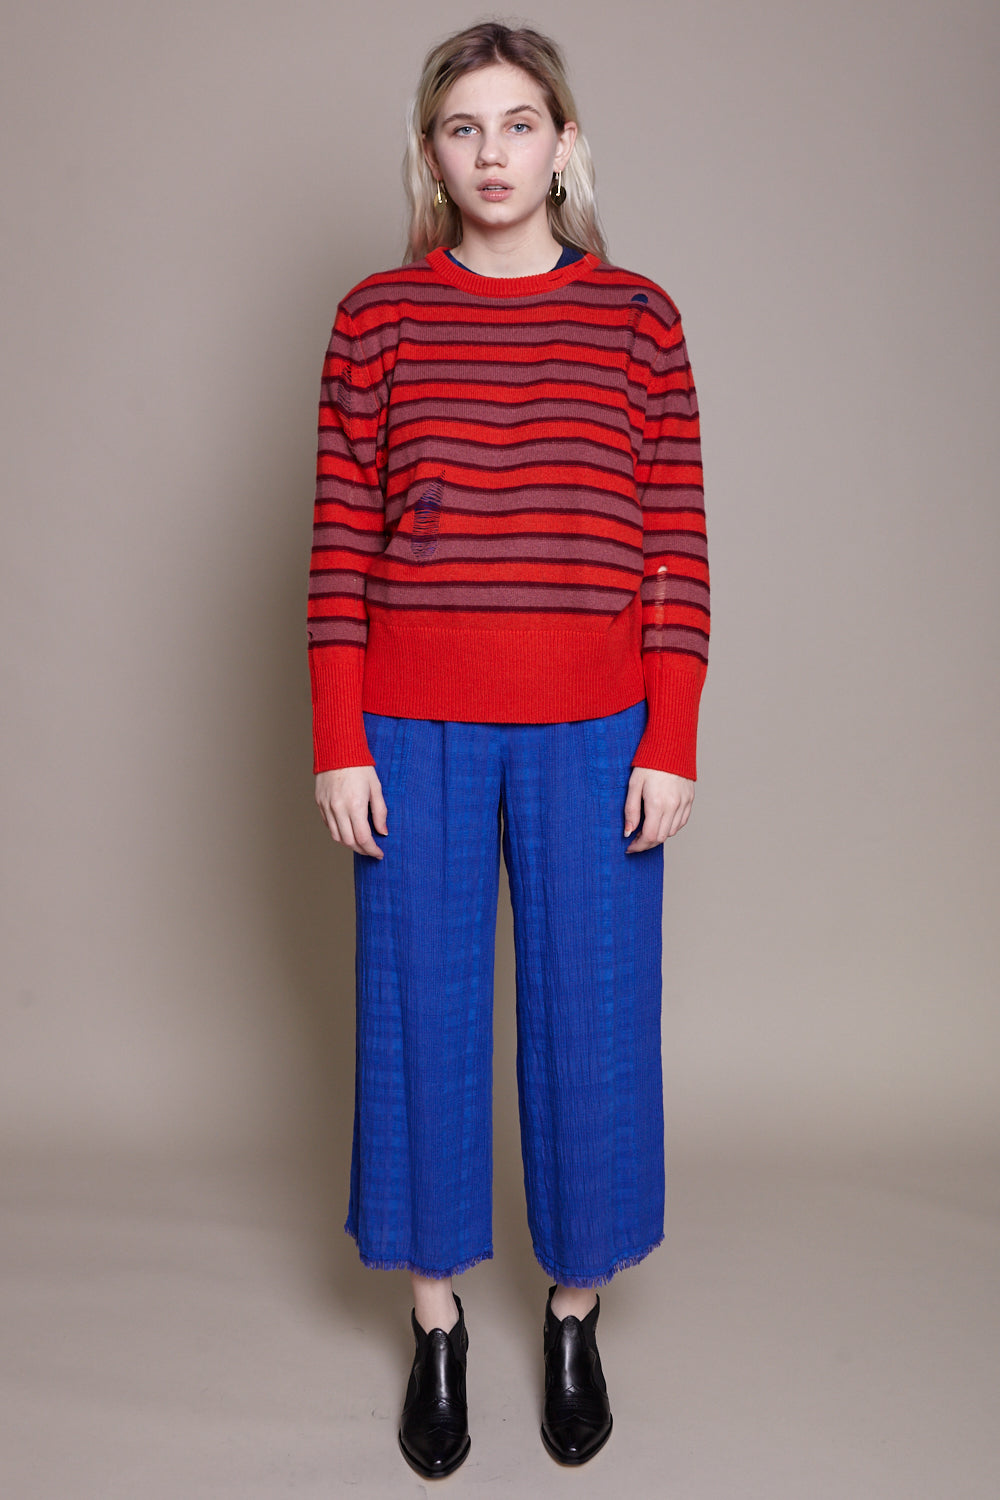 Raquel Allegra Crew Sweater in Tomato Stripe - Vert & Vogue